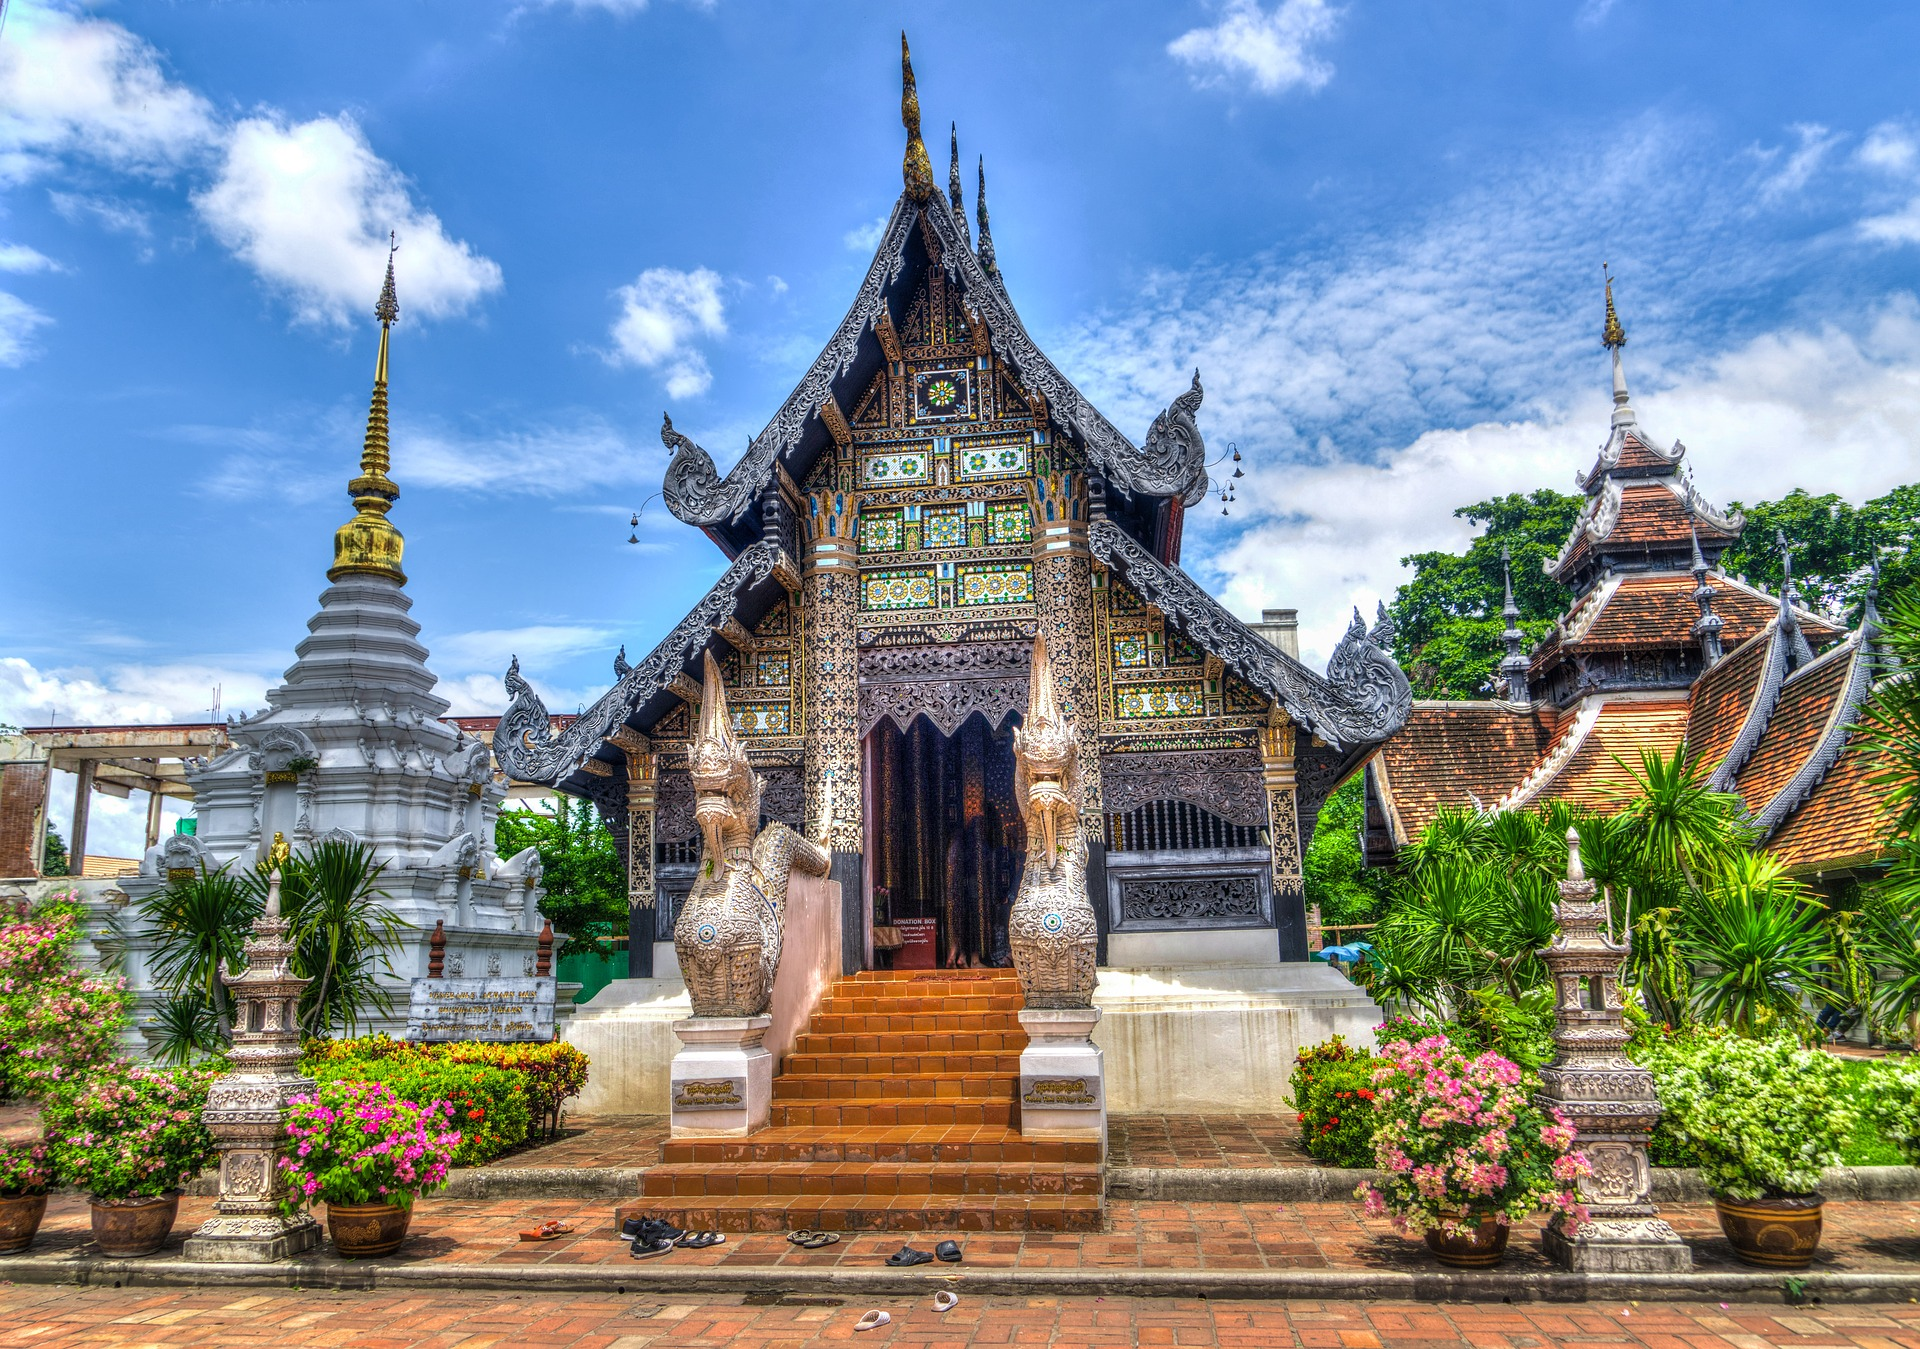 Chiang Mai | DigiNo | 10 Best Locations For Digital Nomads